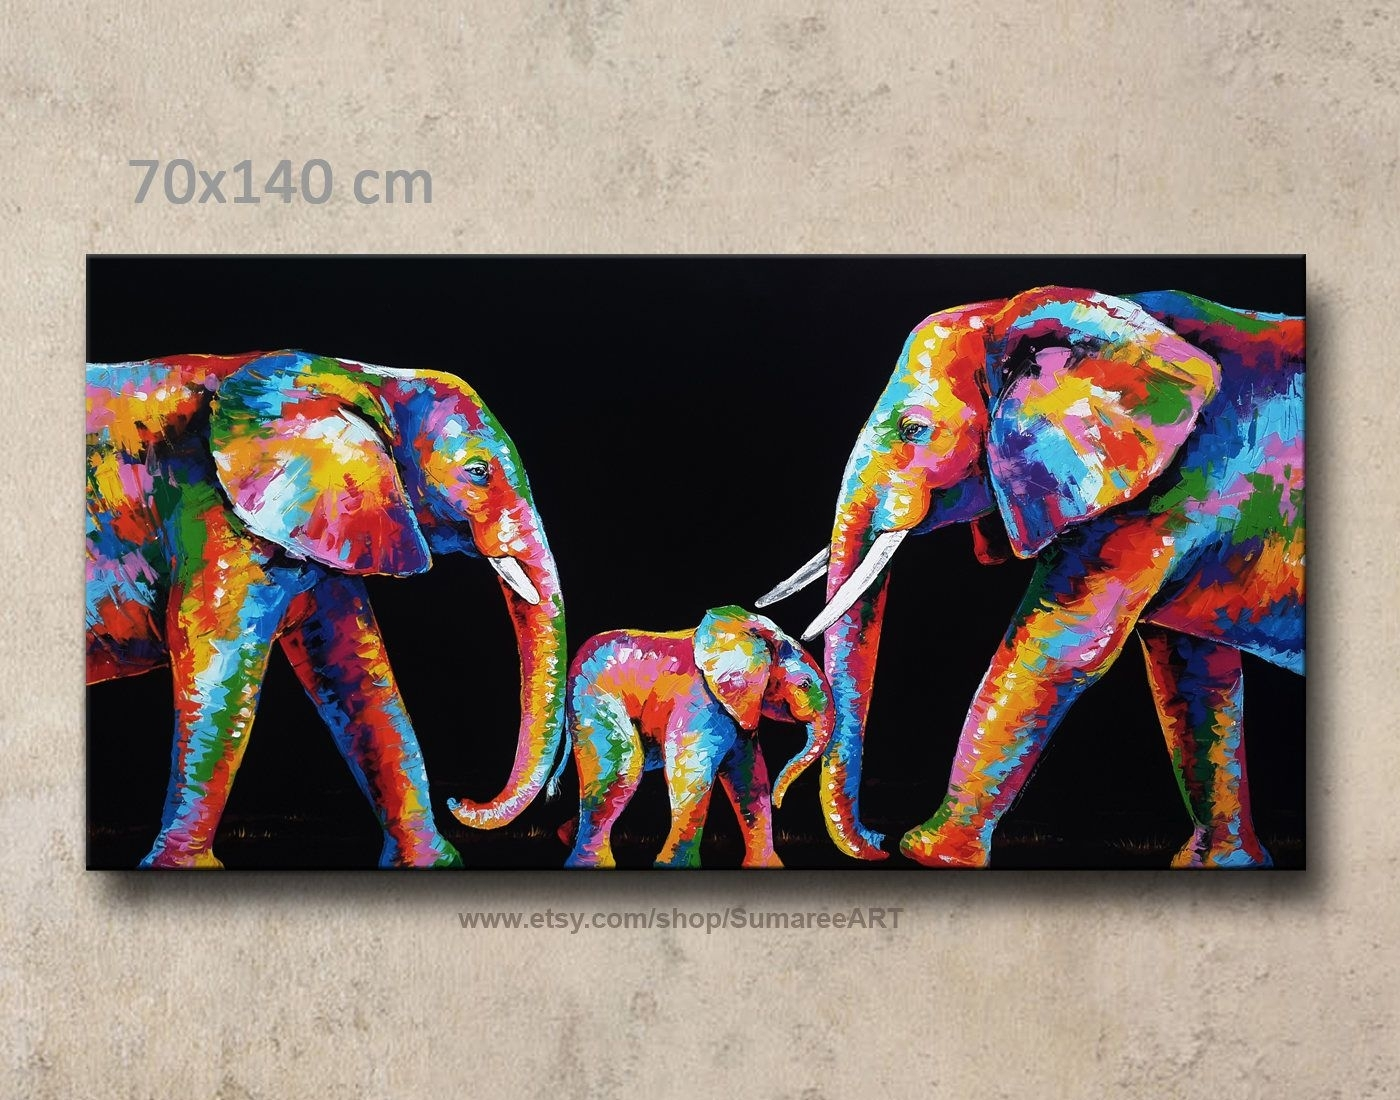 70 X 140 Cm,colorful Elephant Painting Wall Decor | Canvas Wall For Most Current Abstract Elephant Wall Art (Gallery 15 of 20)